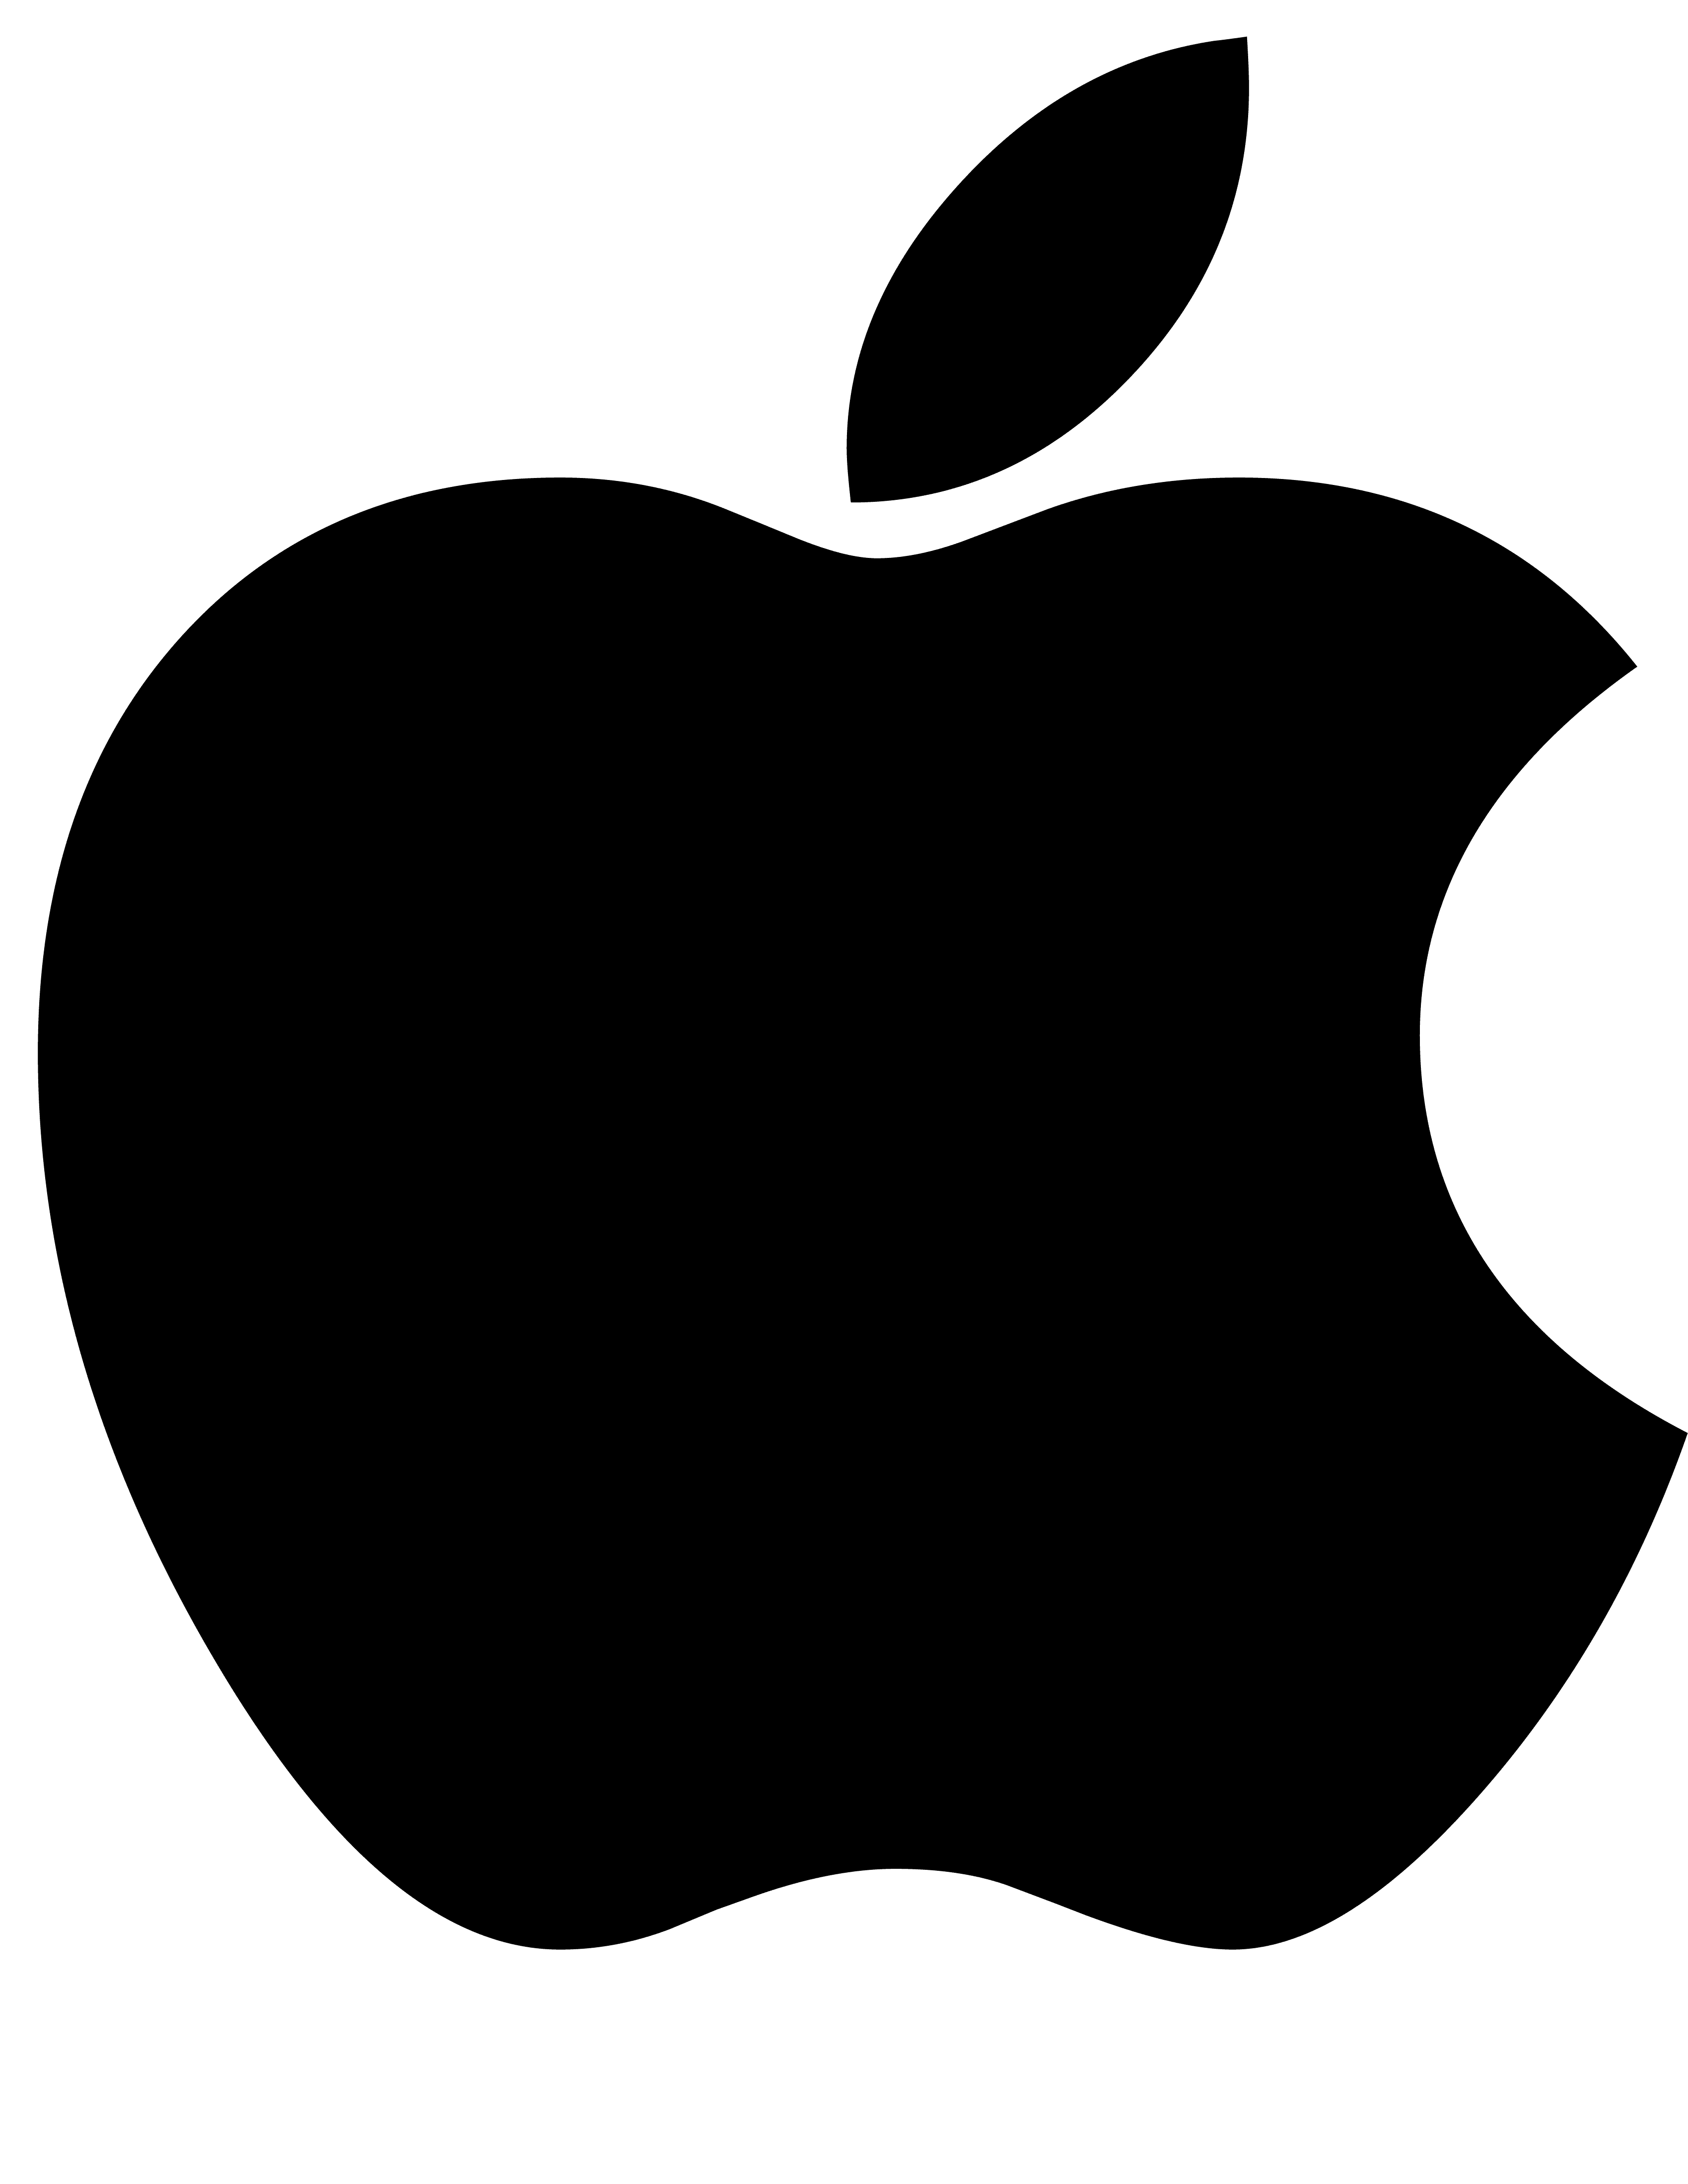 giant-apple-logo-bw